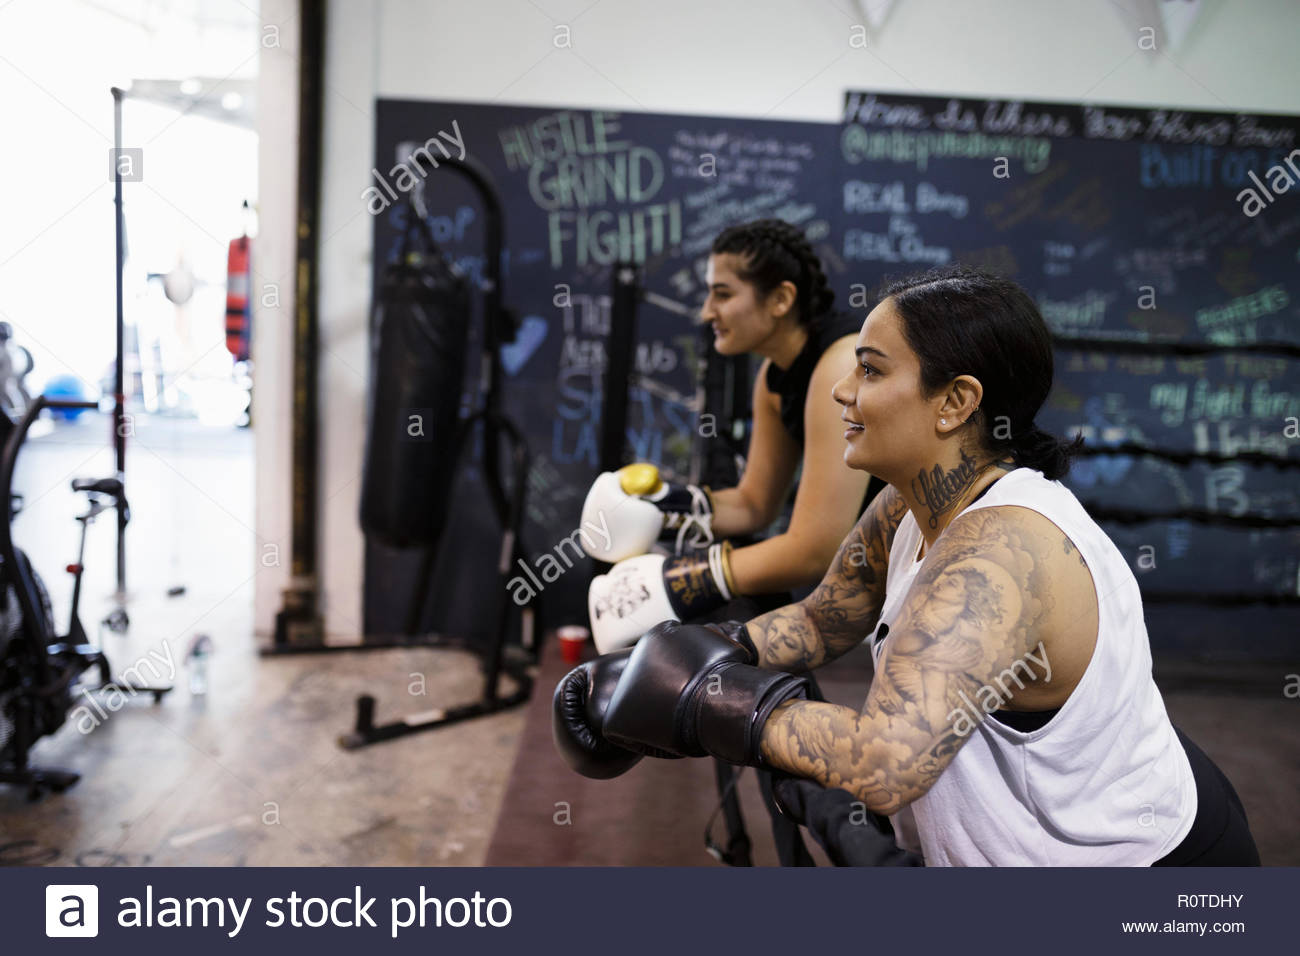 Female boxer with tattoos resting in gym - Stock Image